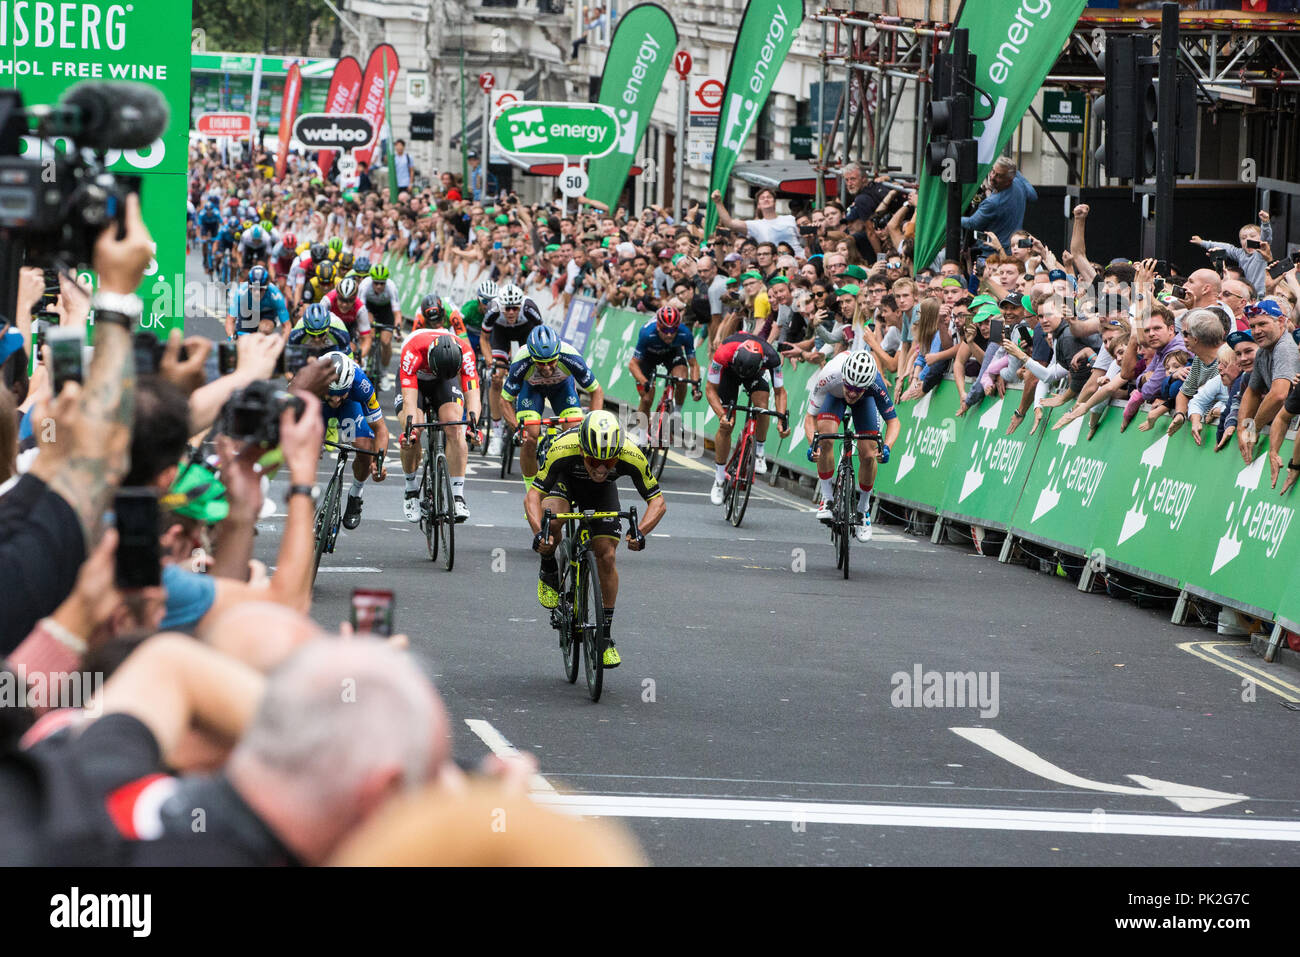 Cycle Race Finish Line Stock Photos   Cycle Race Finish Line Stock ... 8a61e8dea